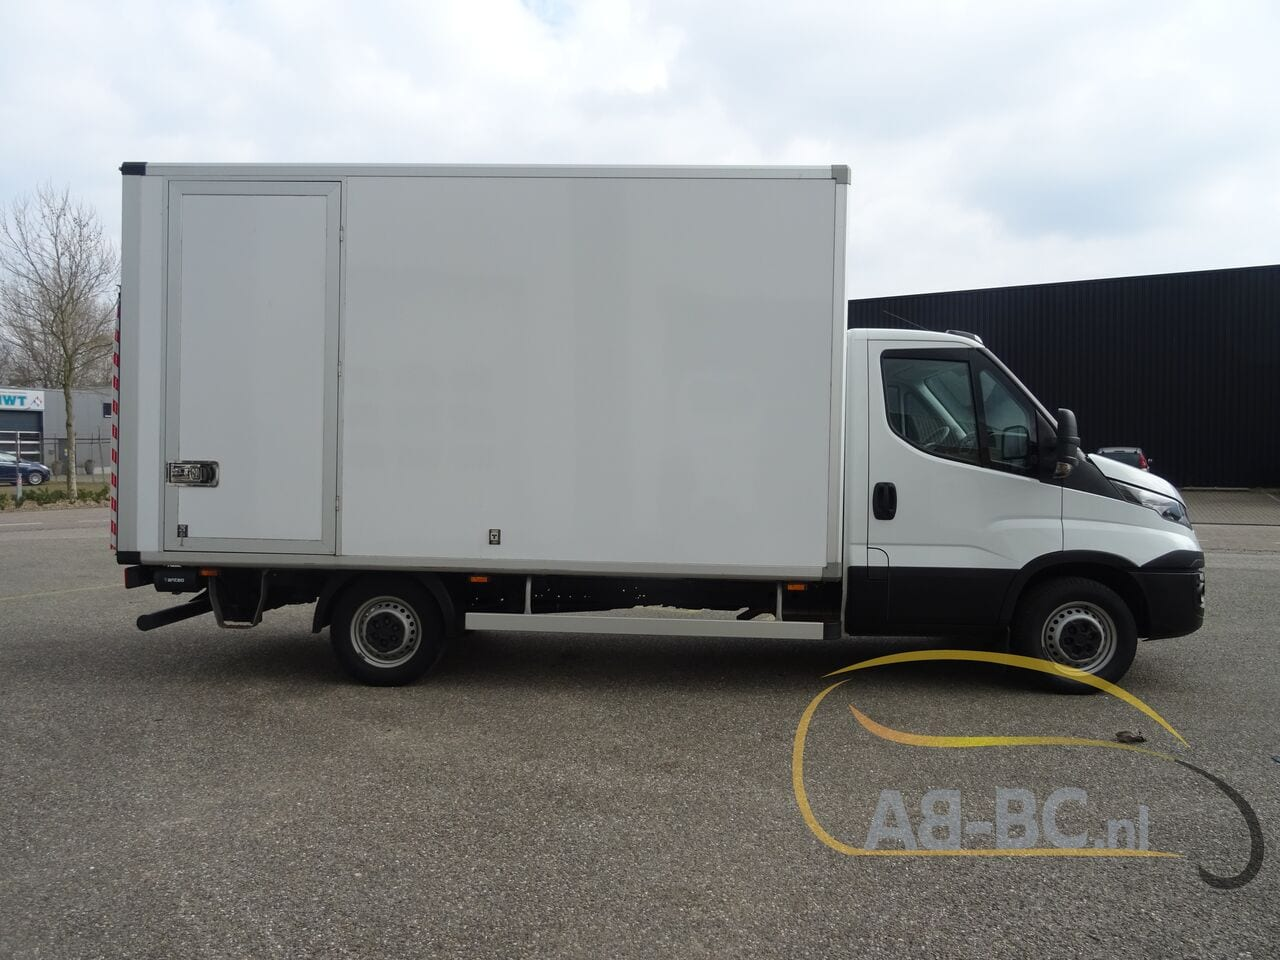 commercial-vehicle-box-truck-3-5tIVECO-Daily-35S14-EURO-6---1618841984949596910_big_61f8887efe795b6909e0a8e5c06ab665--20081111411660340700